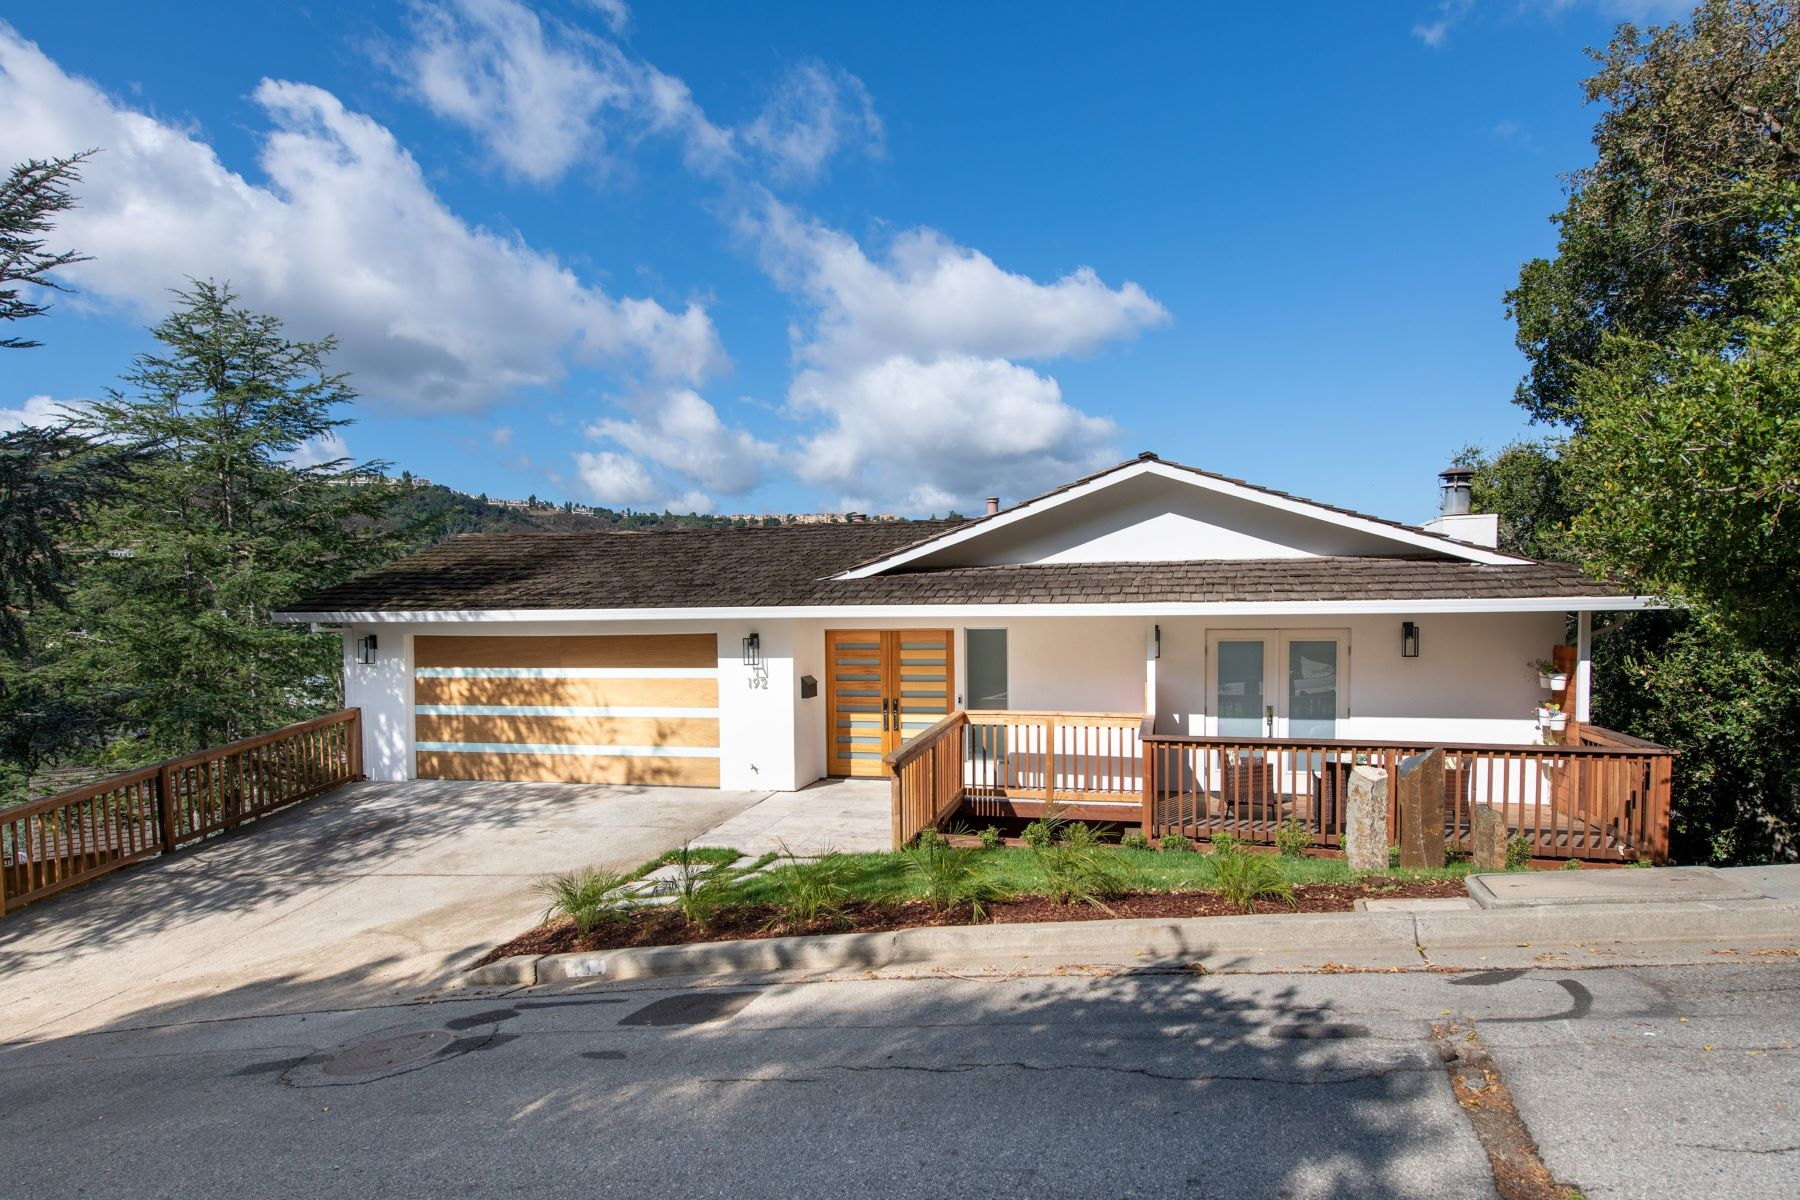 Single Family Homes for Sale at Remodeled Home with Breathtaking Views 192 Coronado Ave San Carlos, California 94070 United States